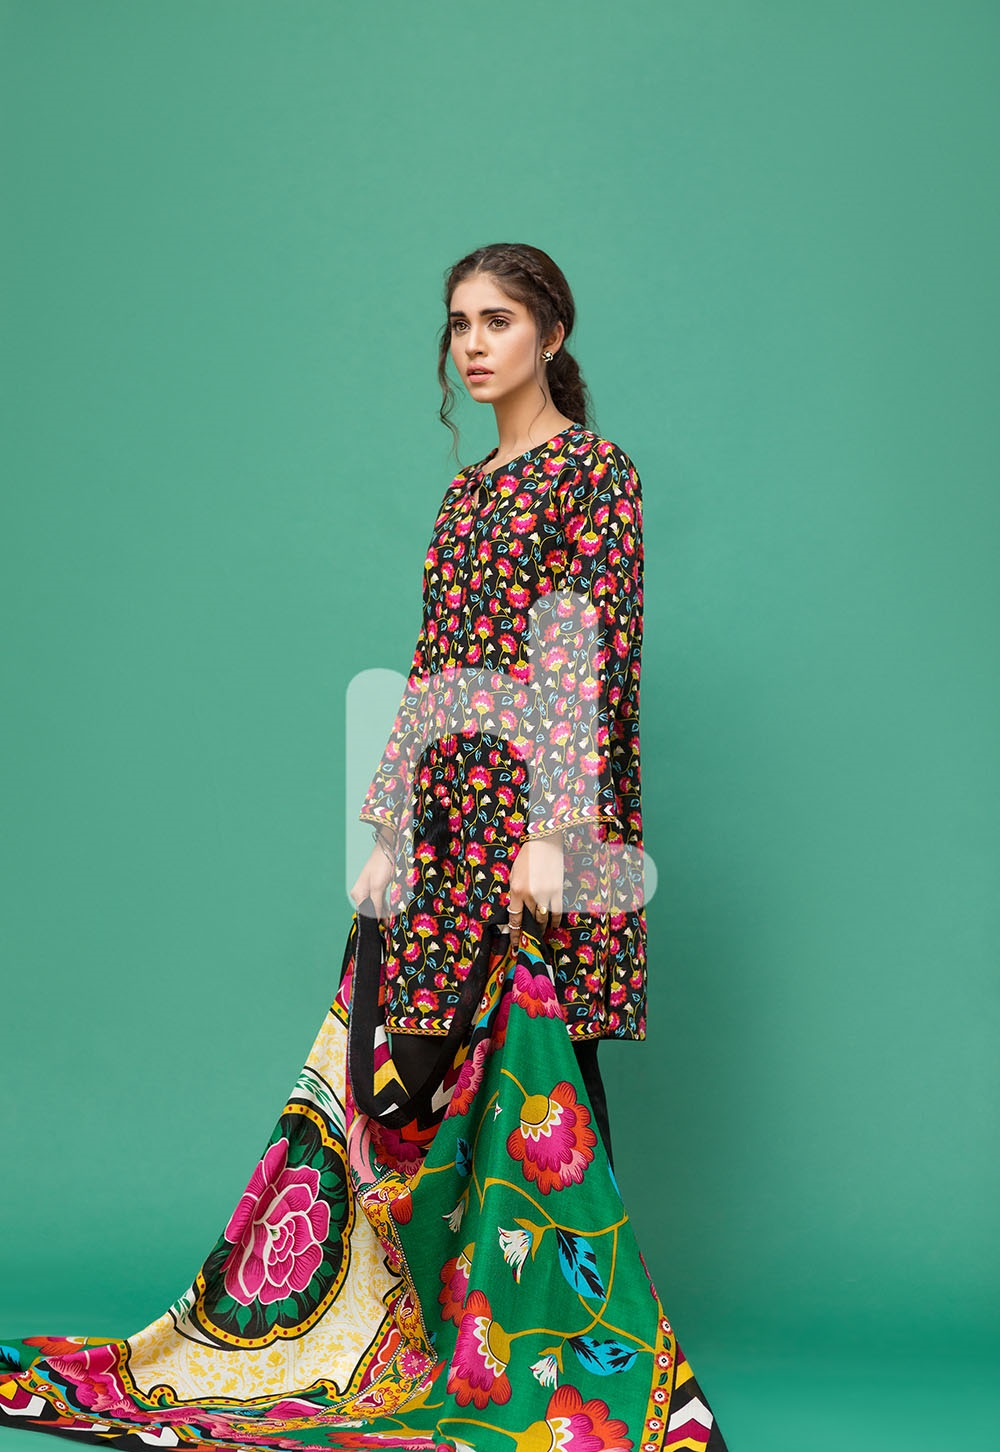 Black karandi multi-colored winter dress by nishat